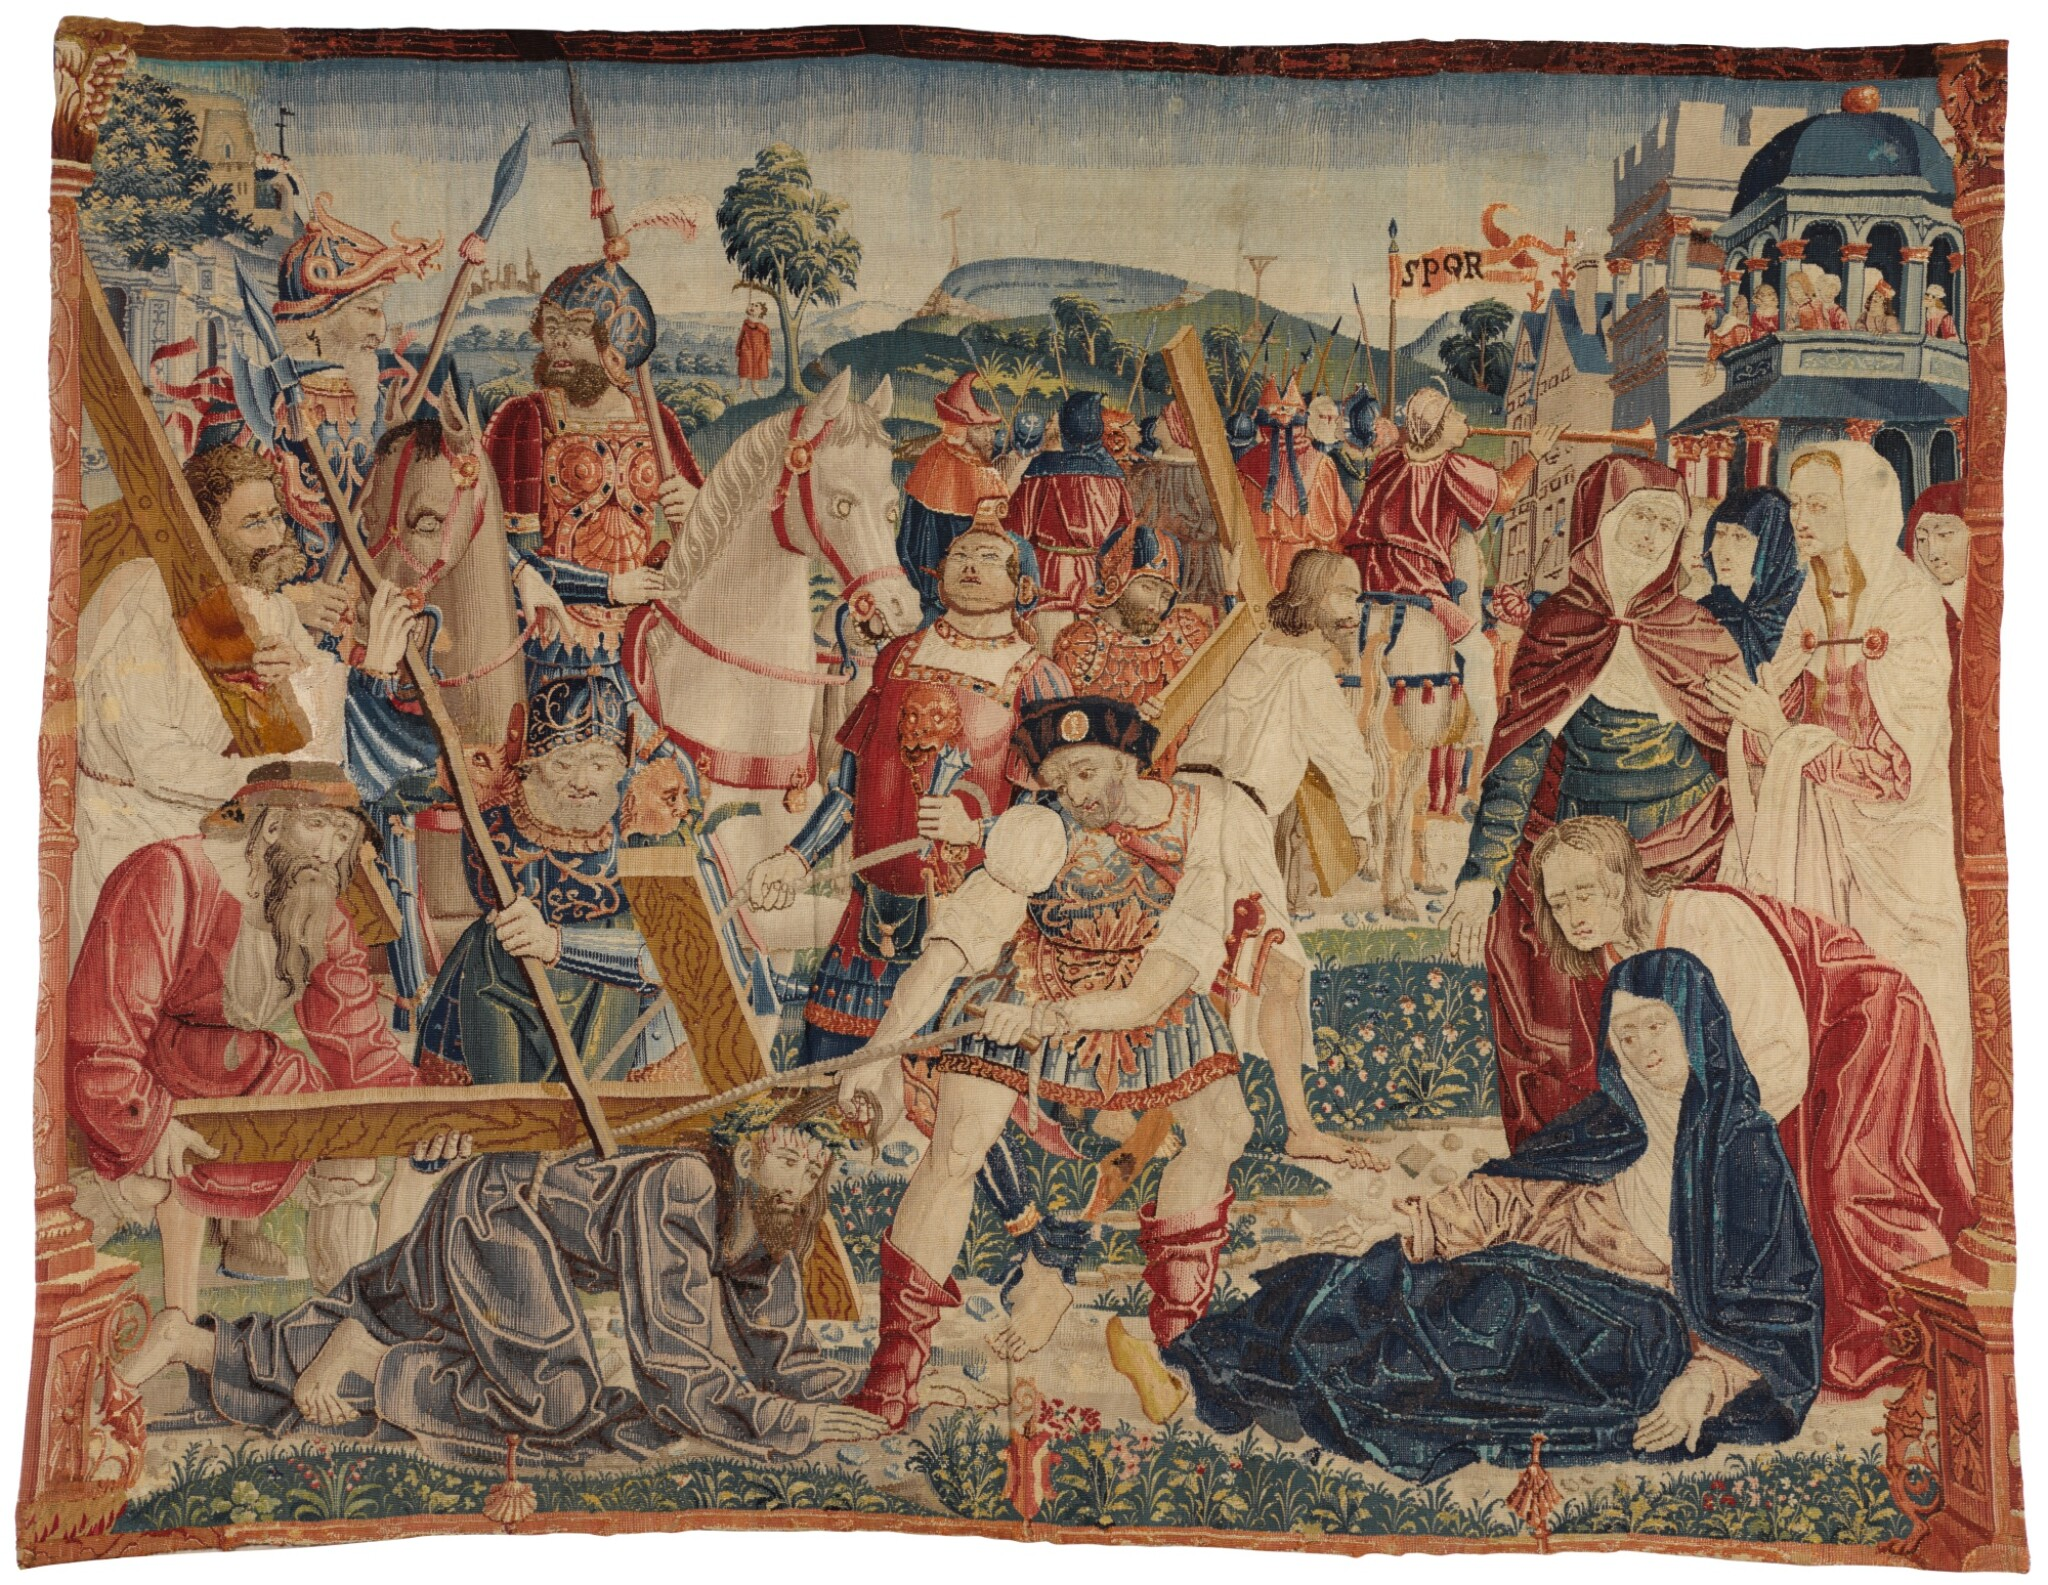 View full screen - View 1 of Lot 74. THE ROAD TO CALVARY, A RARE FLEMISH NEW TESTAMENT BIBLICAL TAPESTRY FRAGMENT, NETHERLANDS, POSSIBLY TOURNAI, FROM THE SERIES OF THE LIFE OF CHRIST AND THE VIRGIN, DESIGNER UNKNOWN, EARLY 16TH CENTURY, CIRCA 1505-1516.